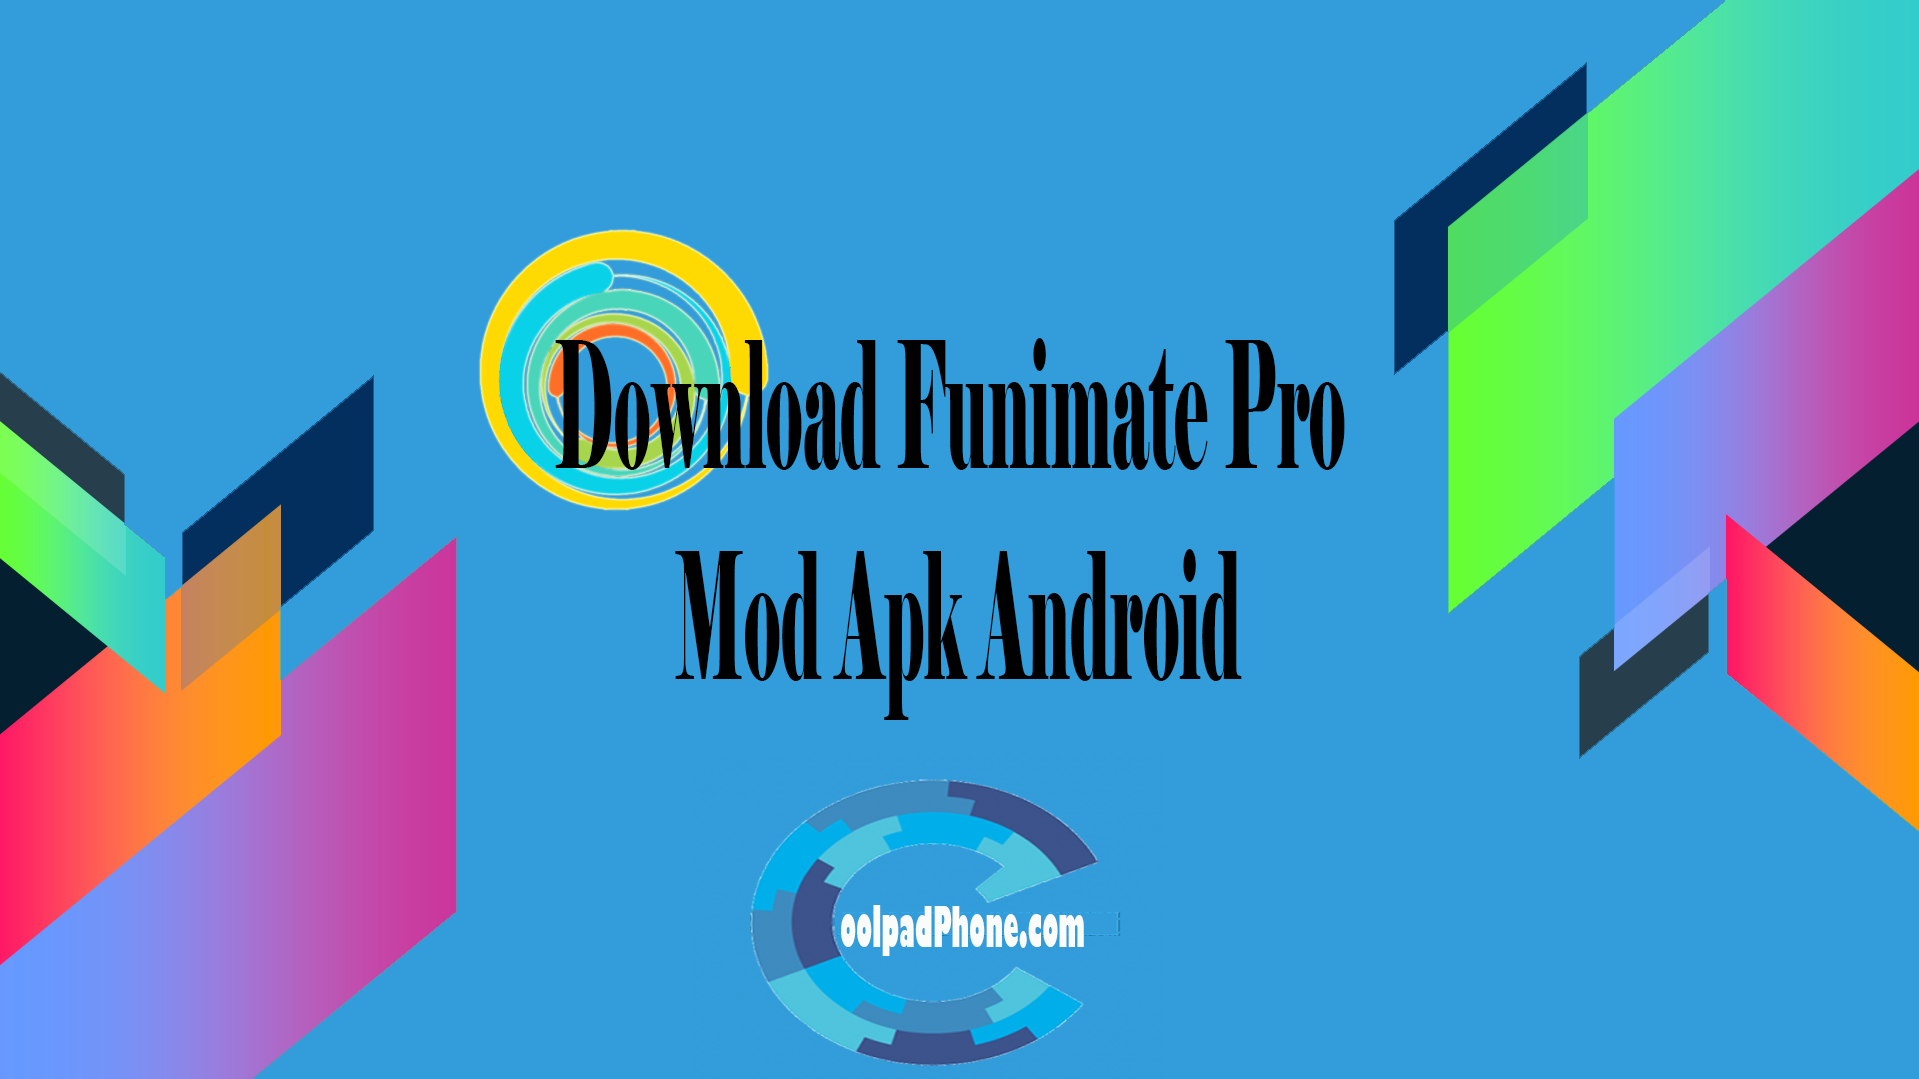 Download Funimate Pro Mod Apk Android